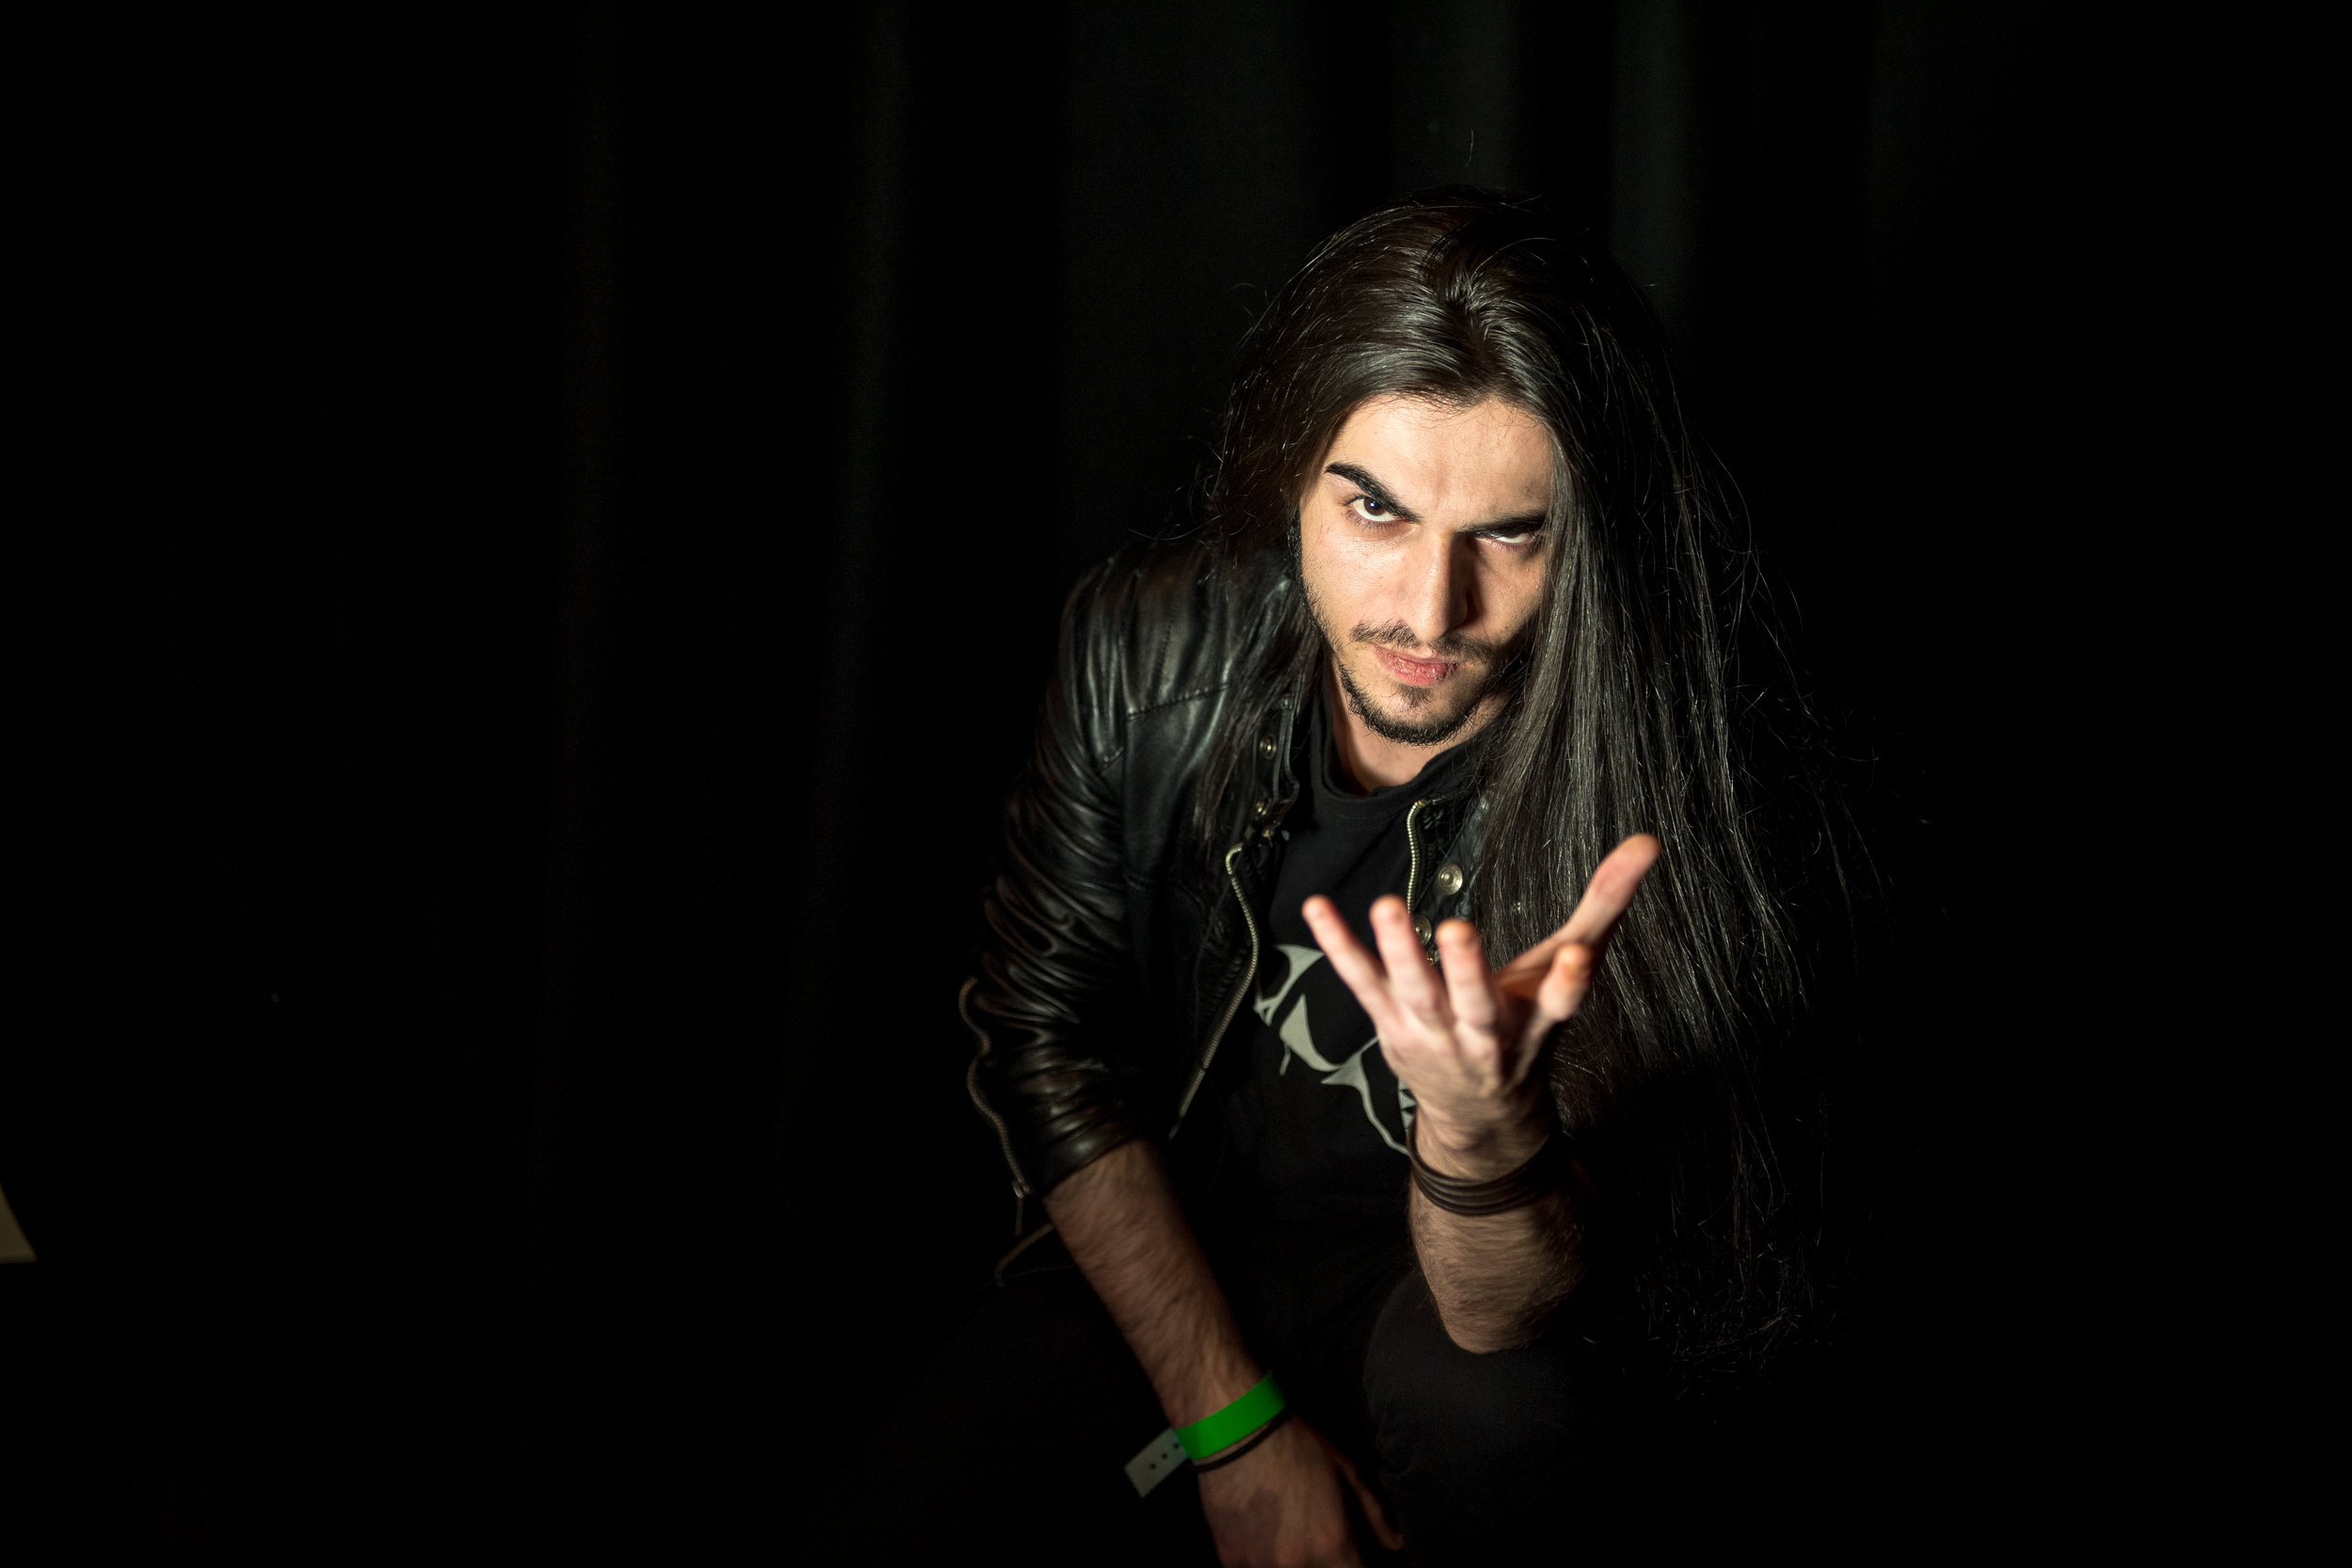 Jake Shuker of Syrian death metal band Maysaloon. (Pic: Tina Korhonen)